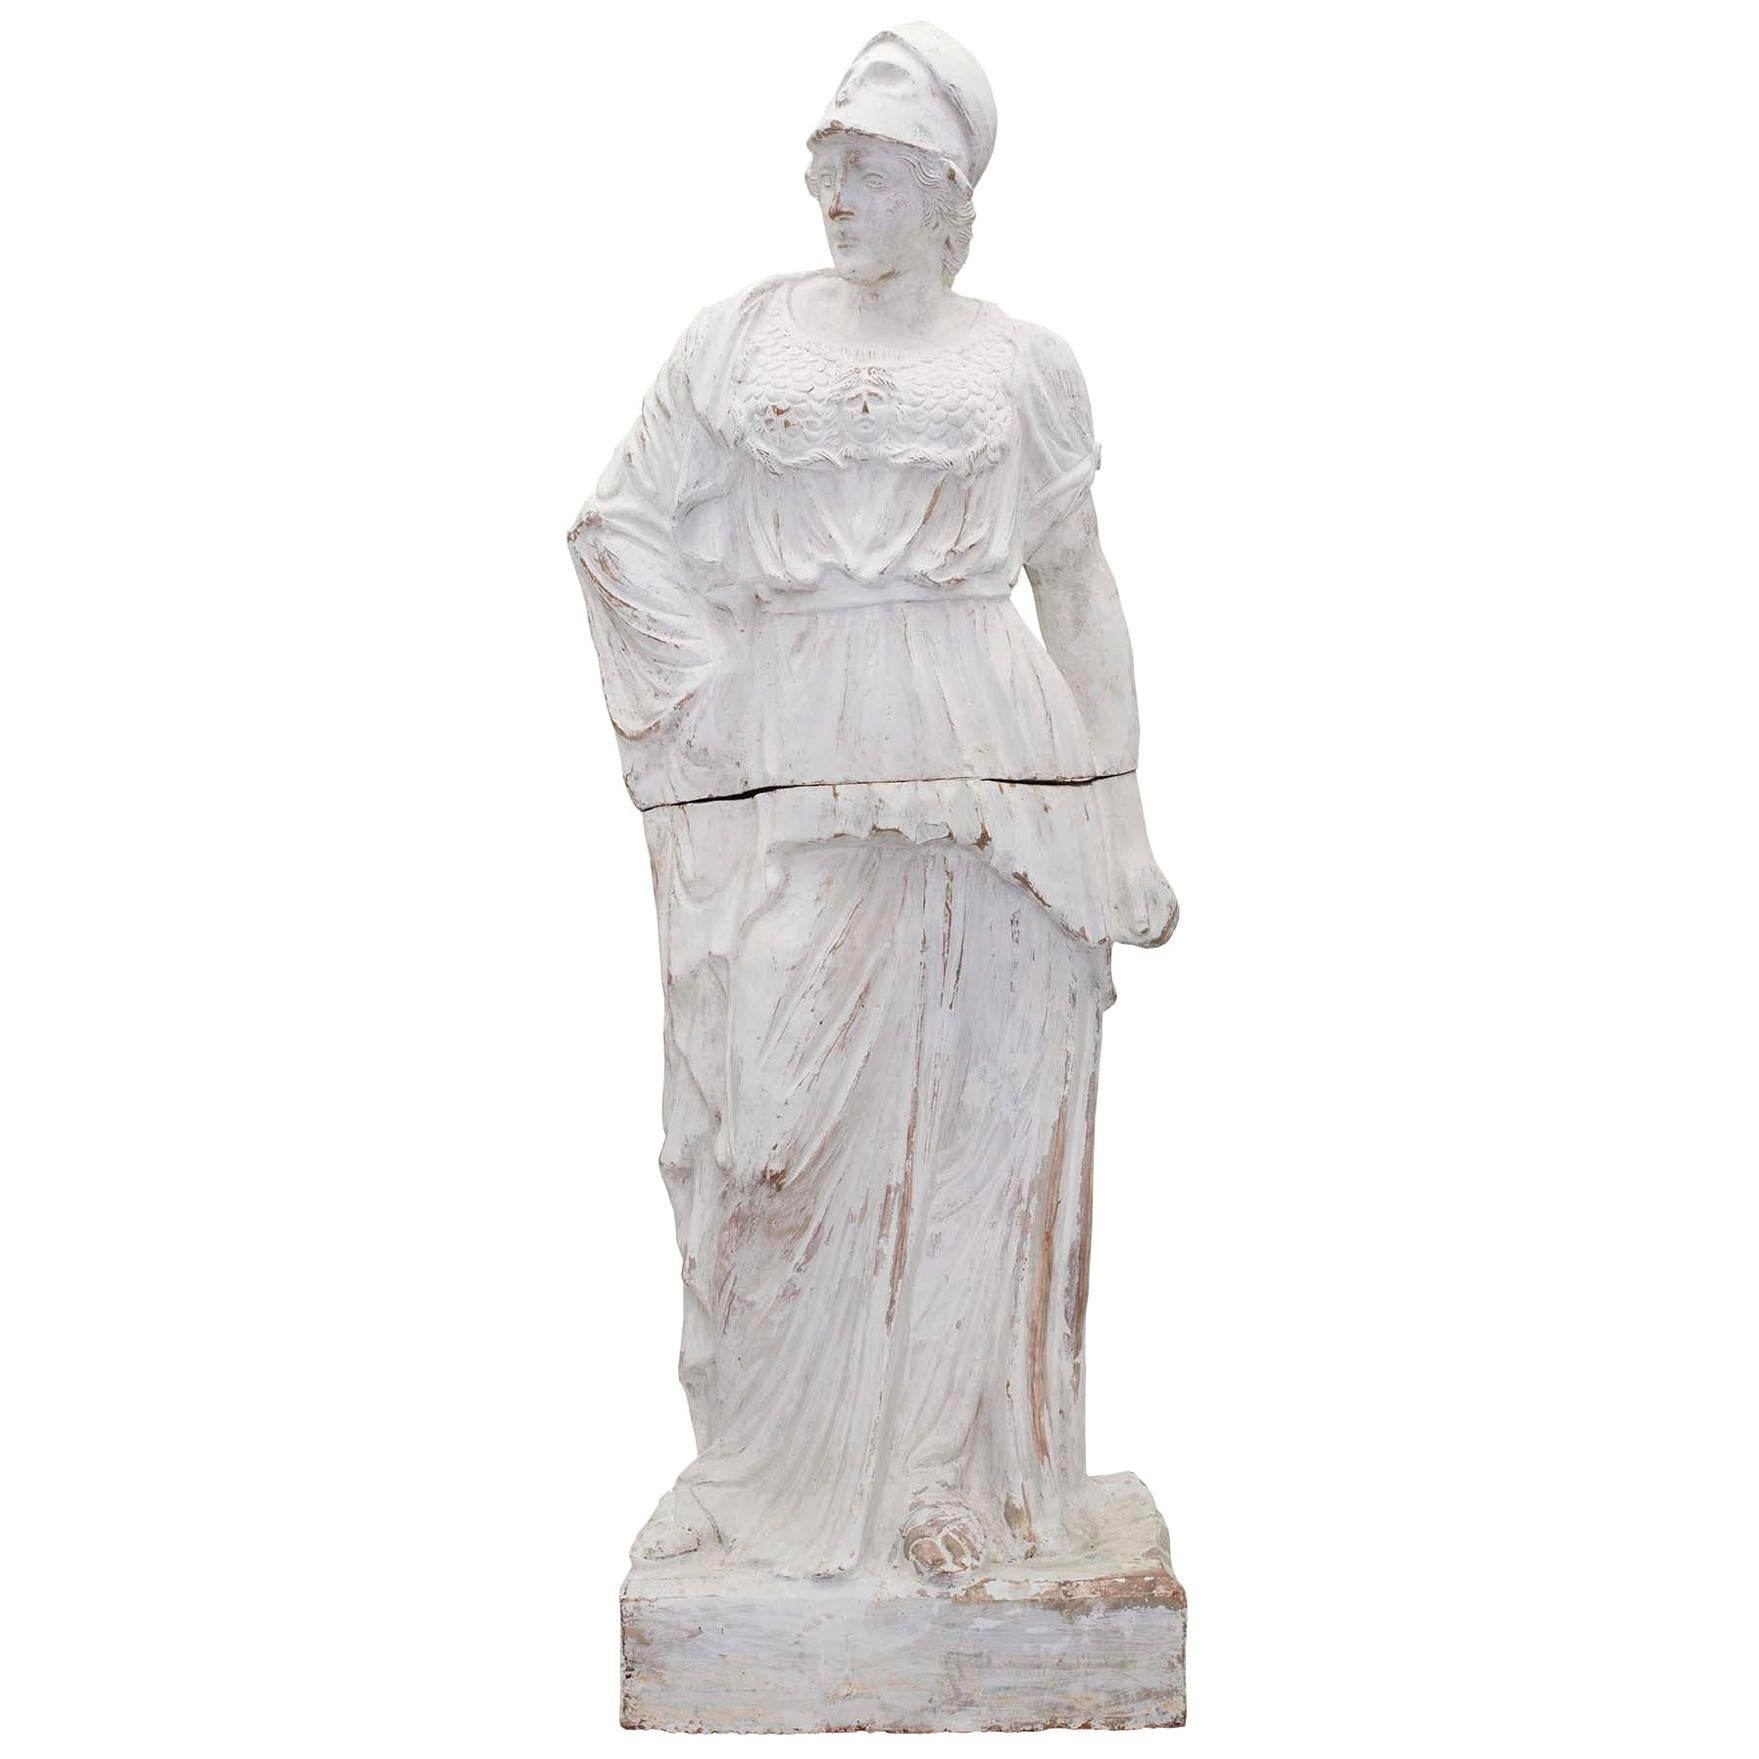 French Patinated Terracotta Statue of a Maiden, 19th Century